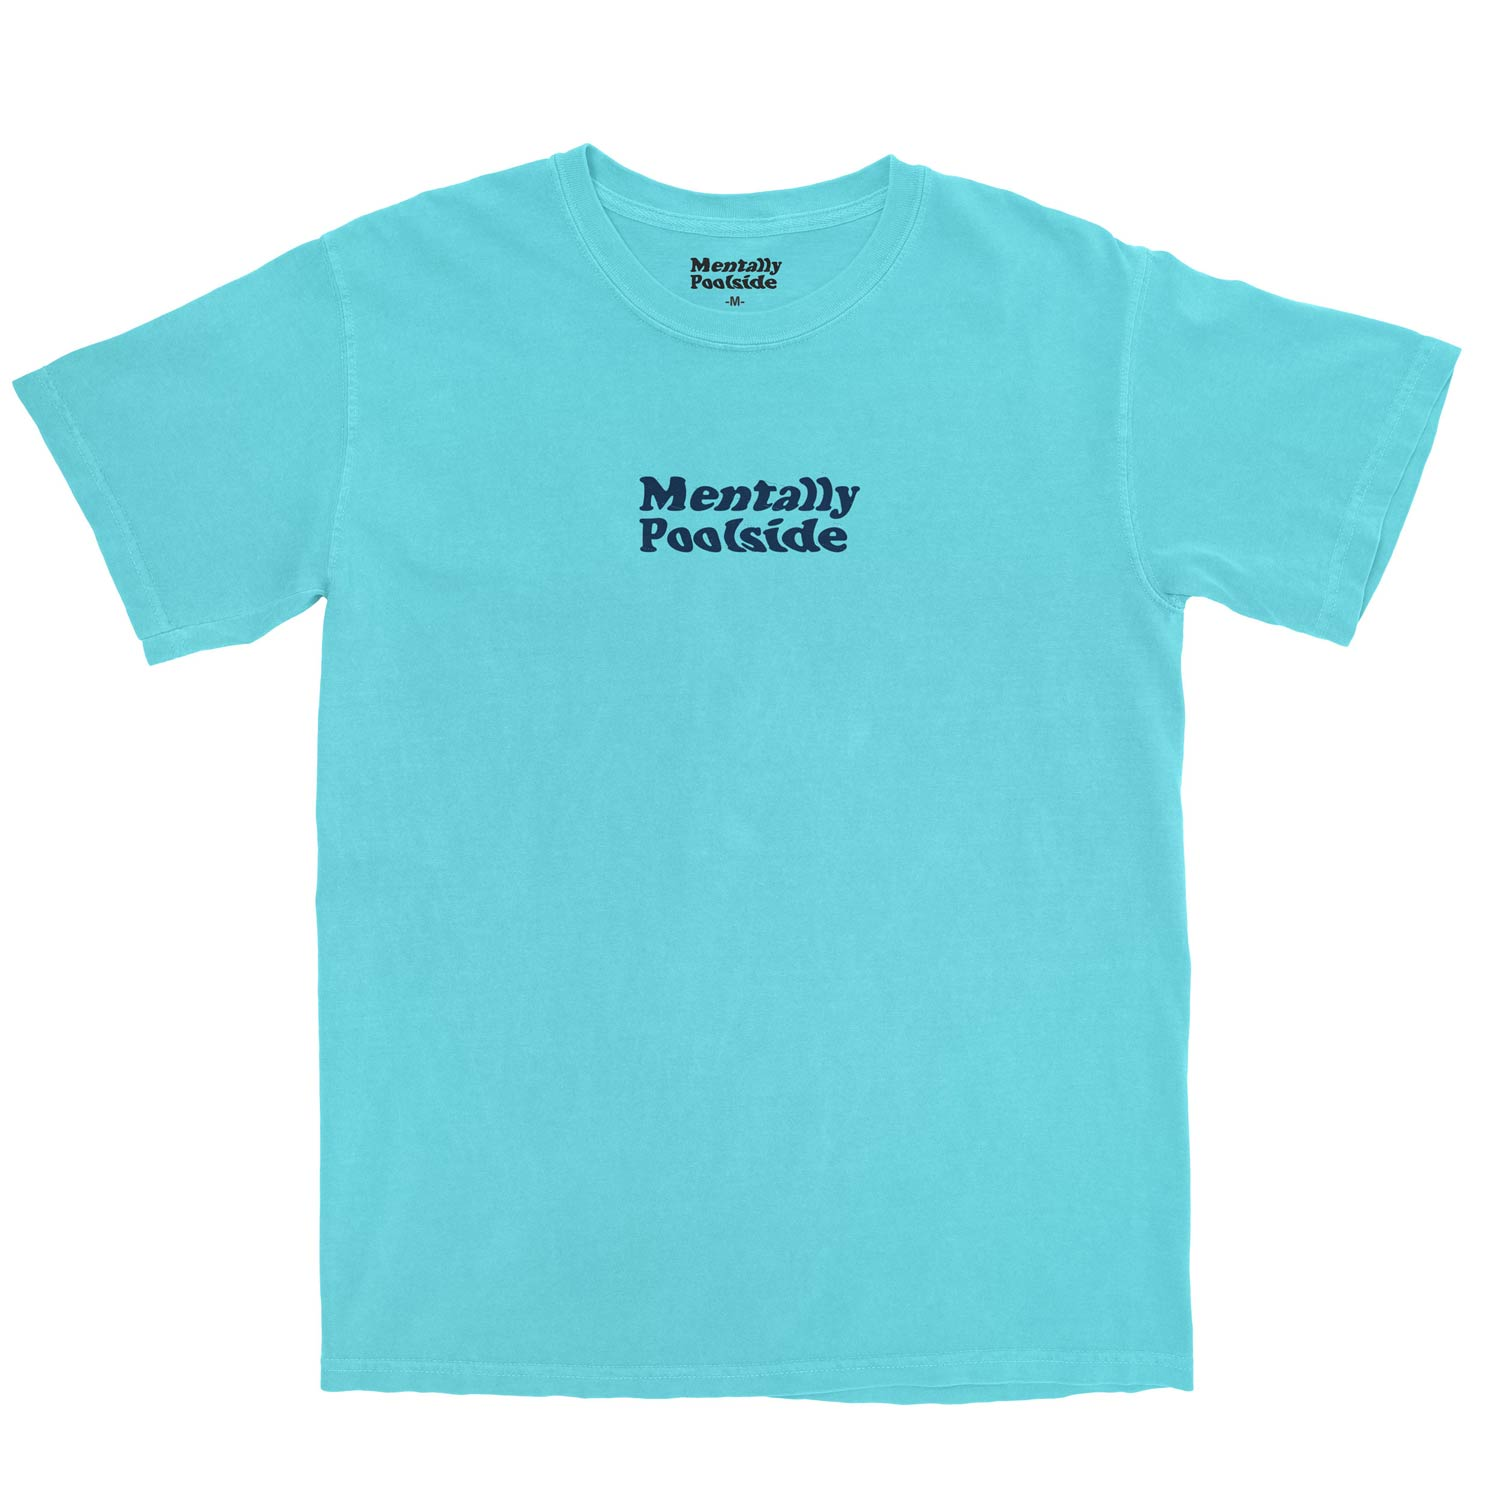 Mentally Poolside OG Tee-Tee shirt-Comfort colors-Lagoon Blue-S-Mentally Poolside